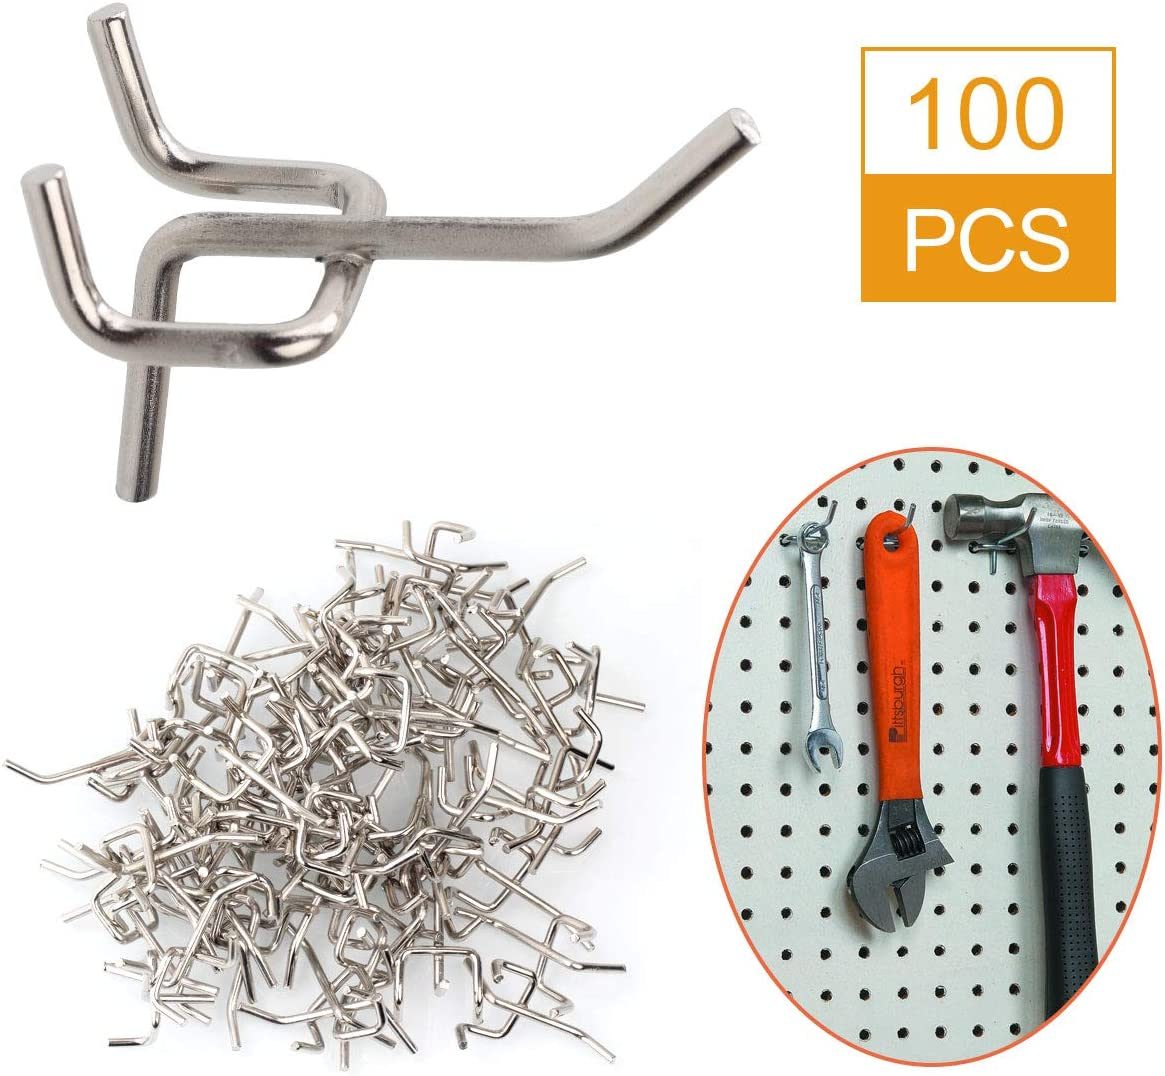 Garage Storage Kitchen Organize Tools for Workbench HNBun 2 Inch Metal Pegboard Hooks Sliver Wall Pegboard Hooks Fit Any Peg Board 100 Pack Heavy Duty Pegboard Shelving Hooks